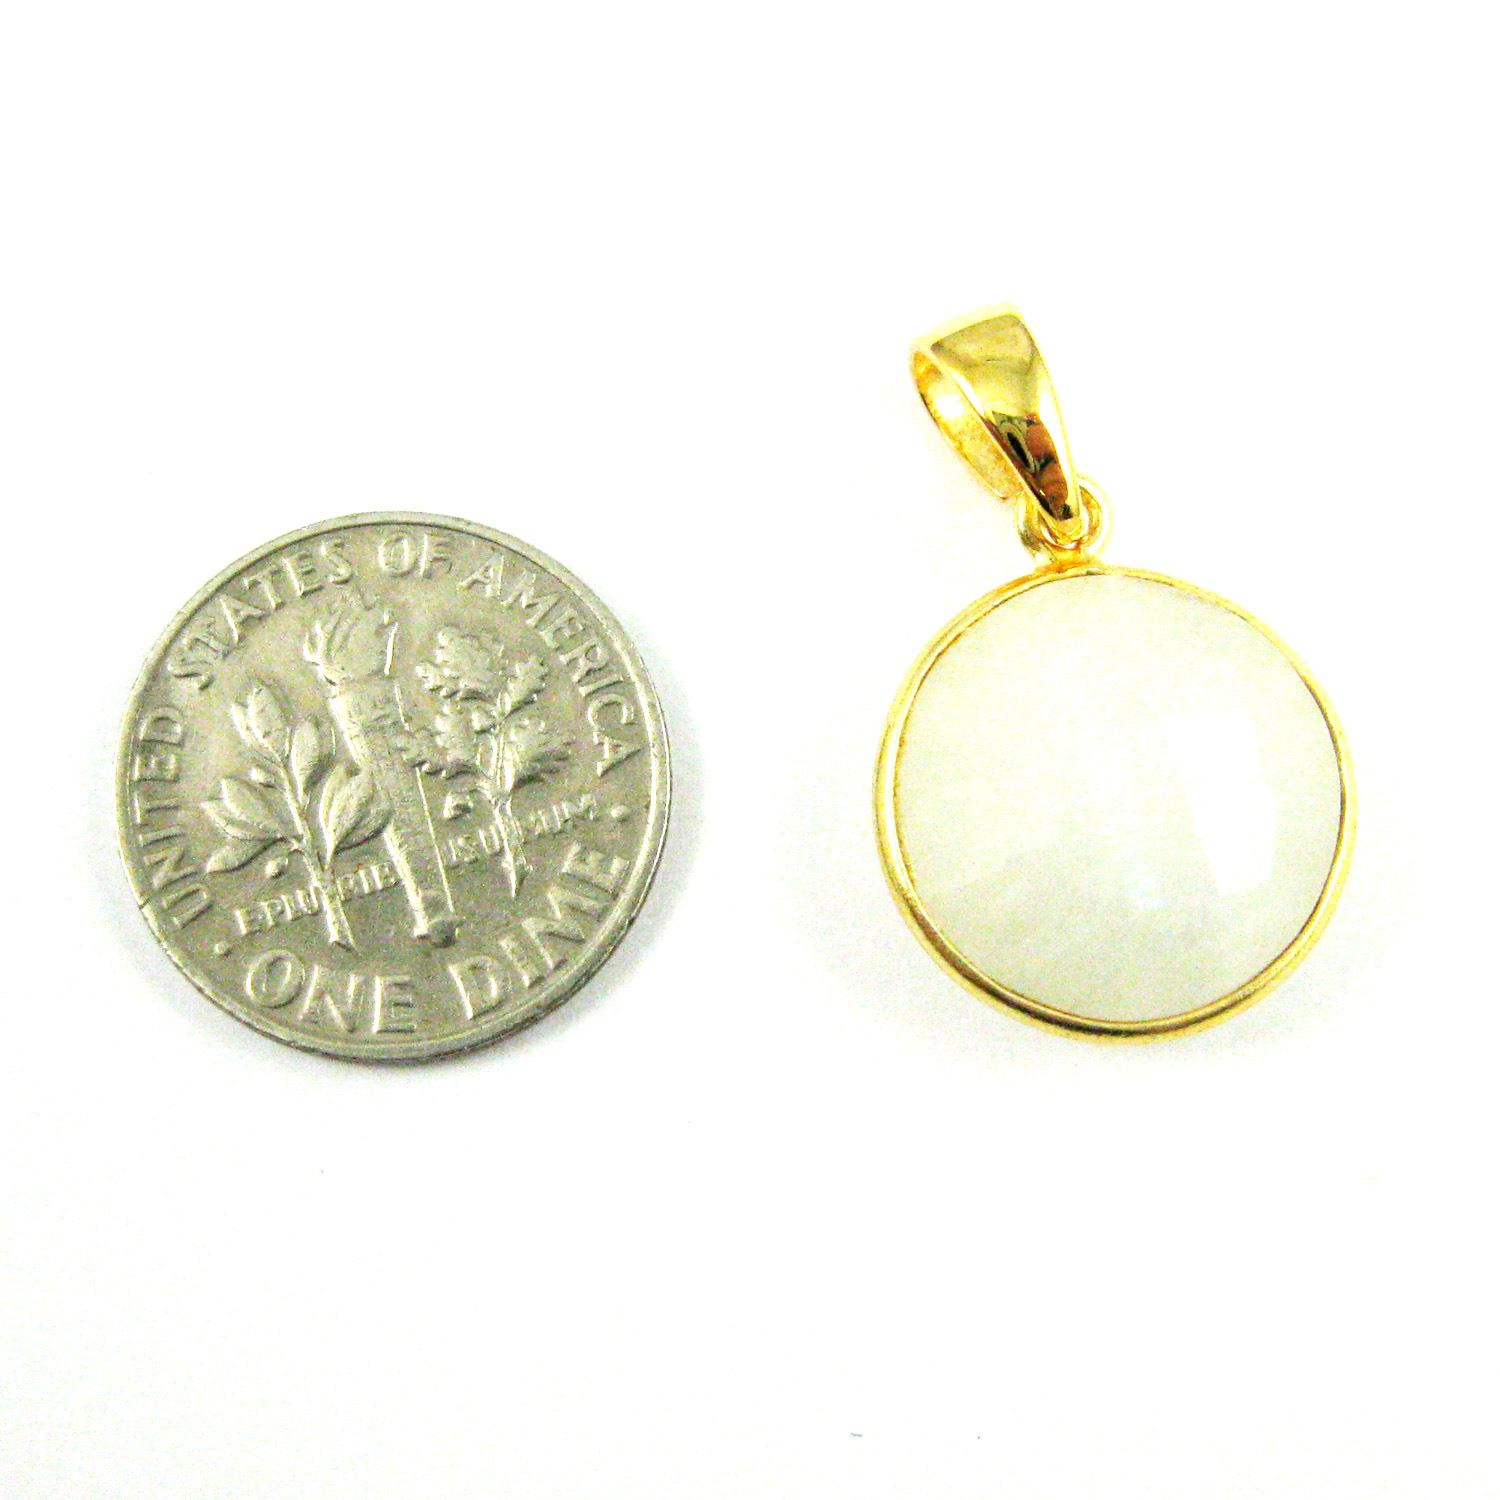 Bezel Gemstone Pendant with Bail - Gold plated Sterling Silver Round Gem Pendant - Ready for Necklace - 24mm- Moonstone